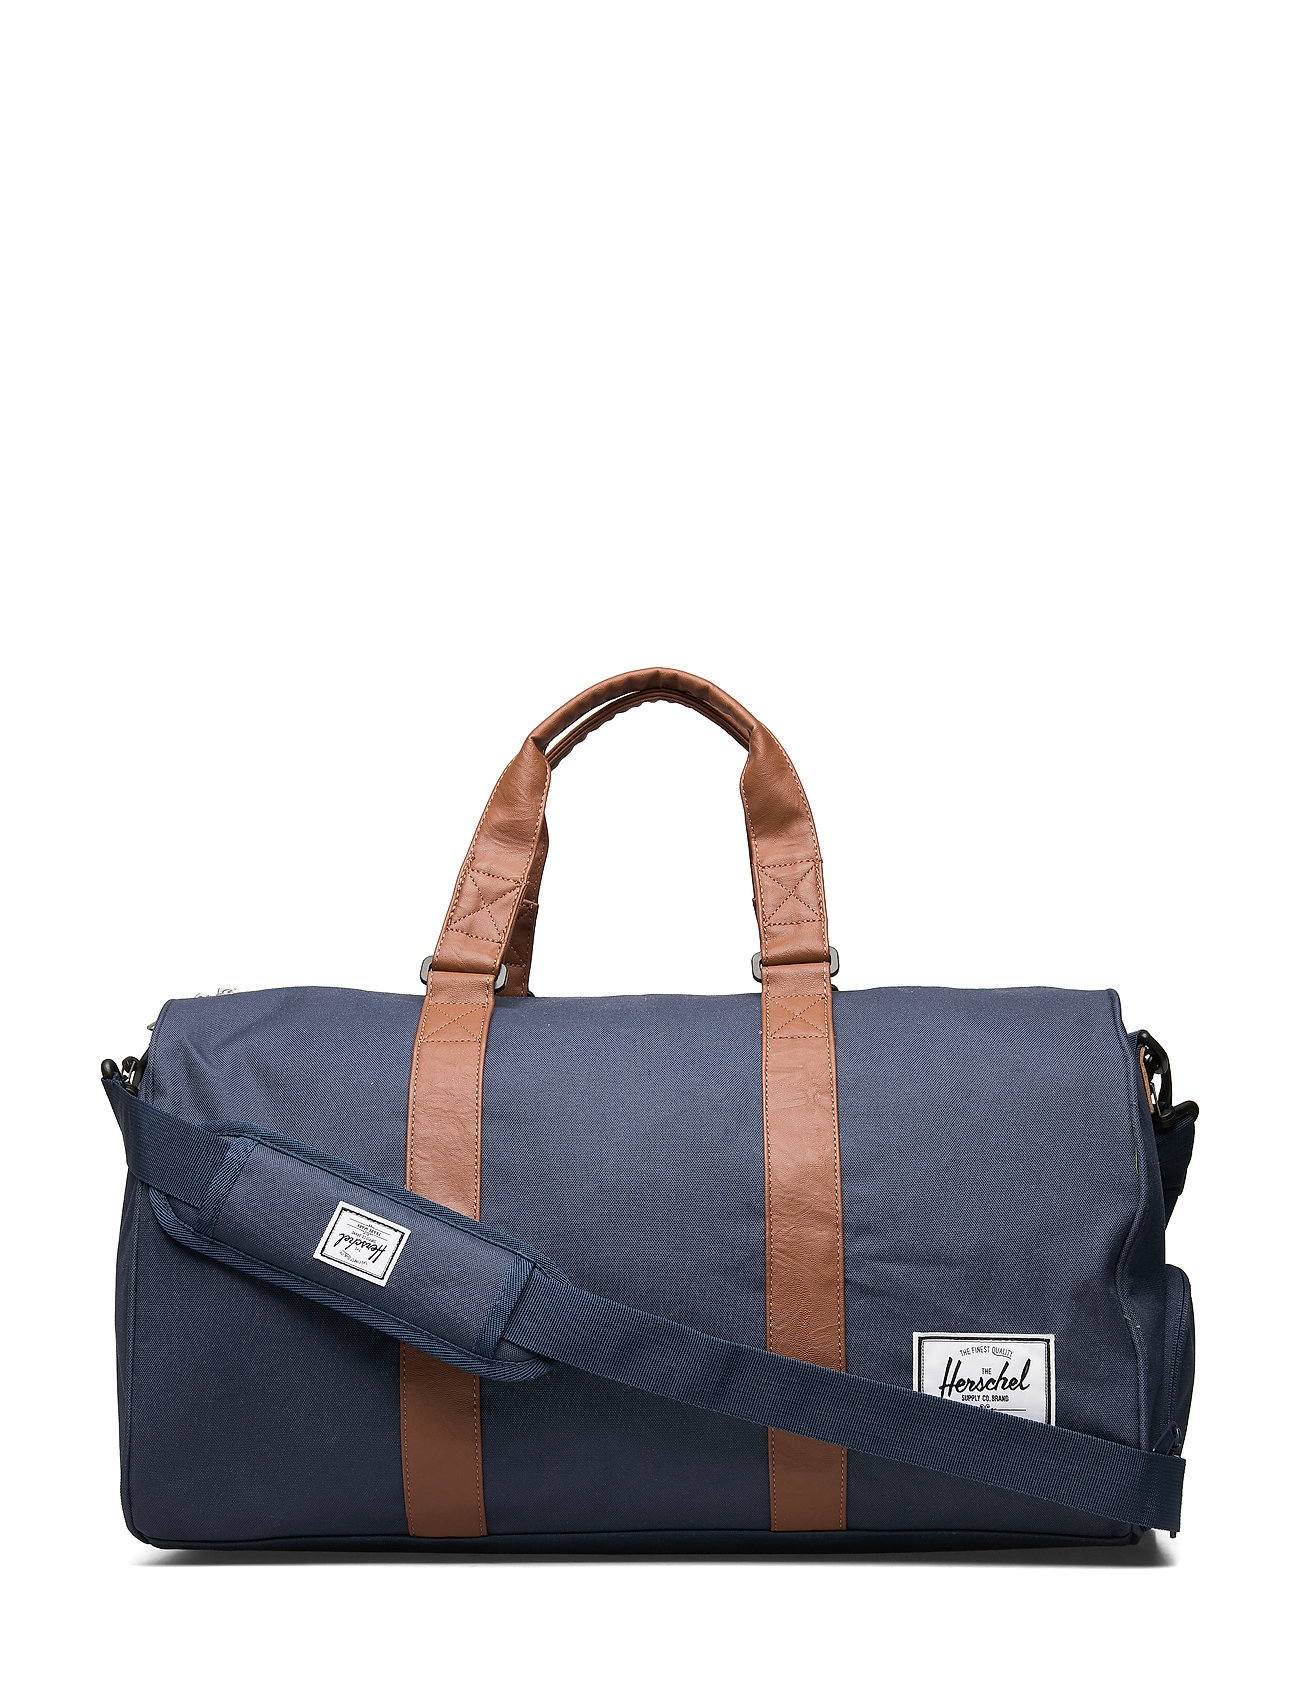 Herschel Novel - NAVY/TAN